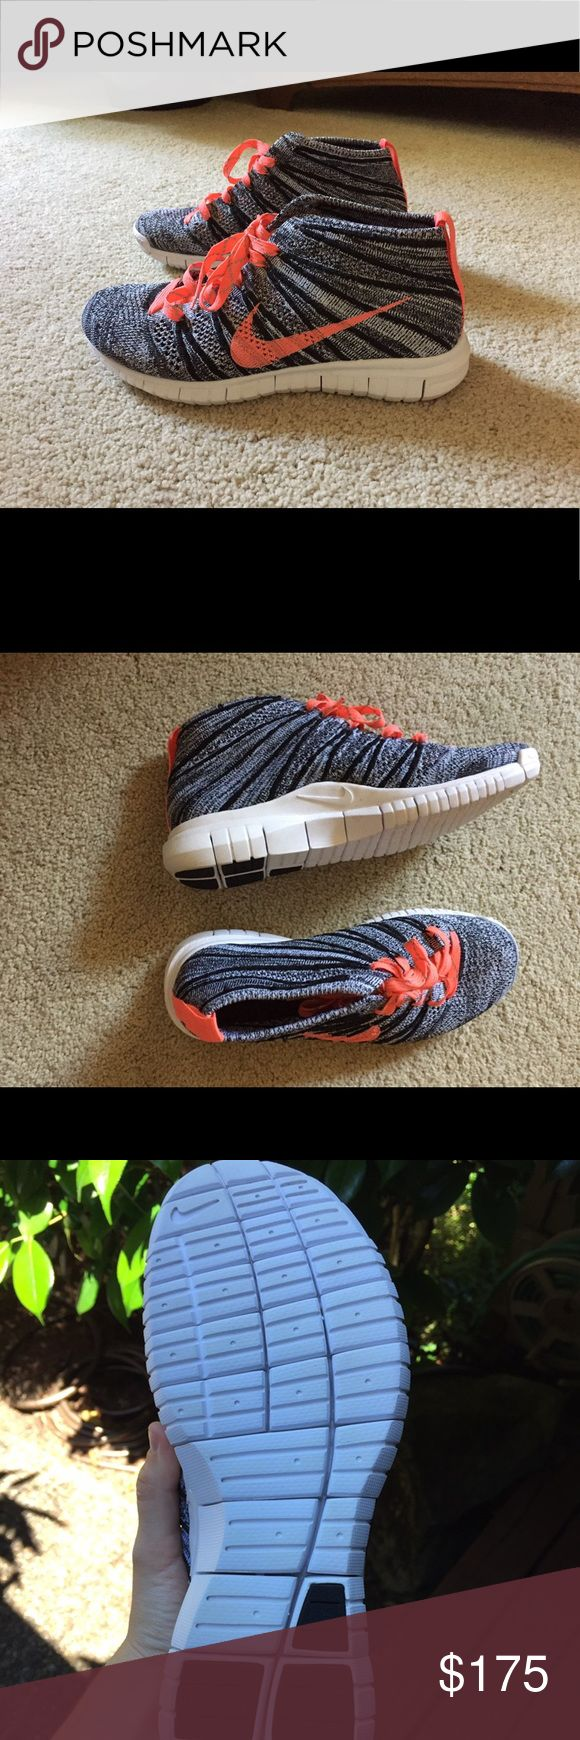 Nike flyknit chukkas new Worn once but bottoms of shoes are perfectly white. These are in brand new condition. No longer sold. Rare. Nike Shoes Athletic Shoes